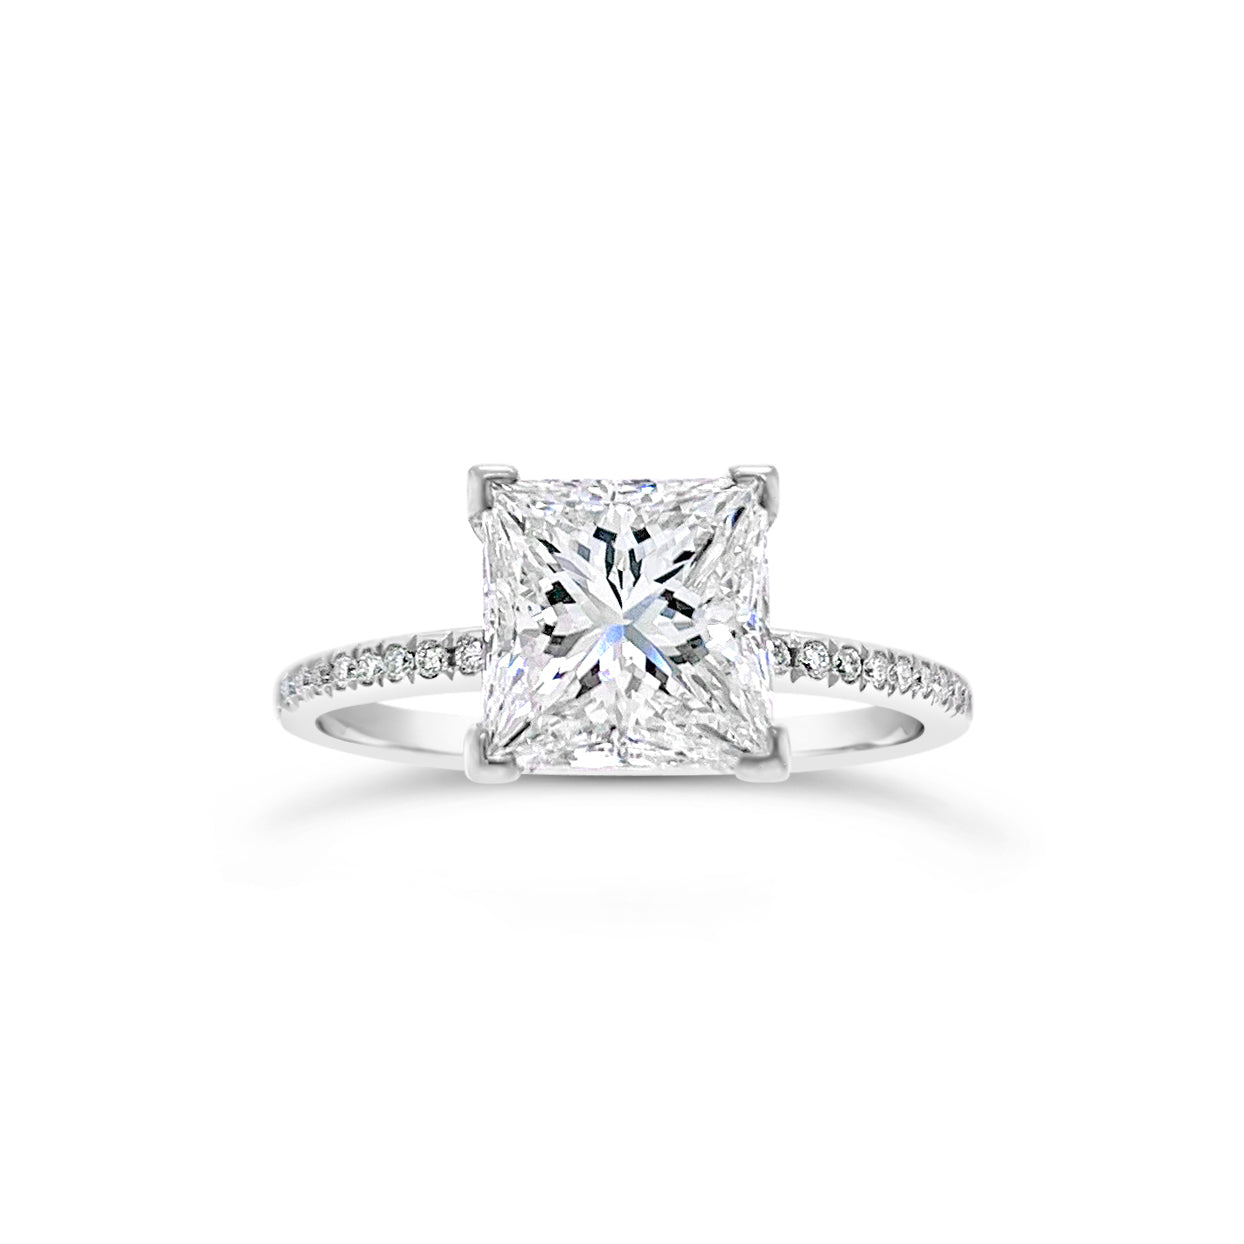 Princess-Cut Diamond Engagement Ring with Pave Diamond Shank